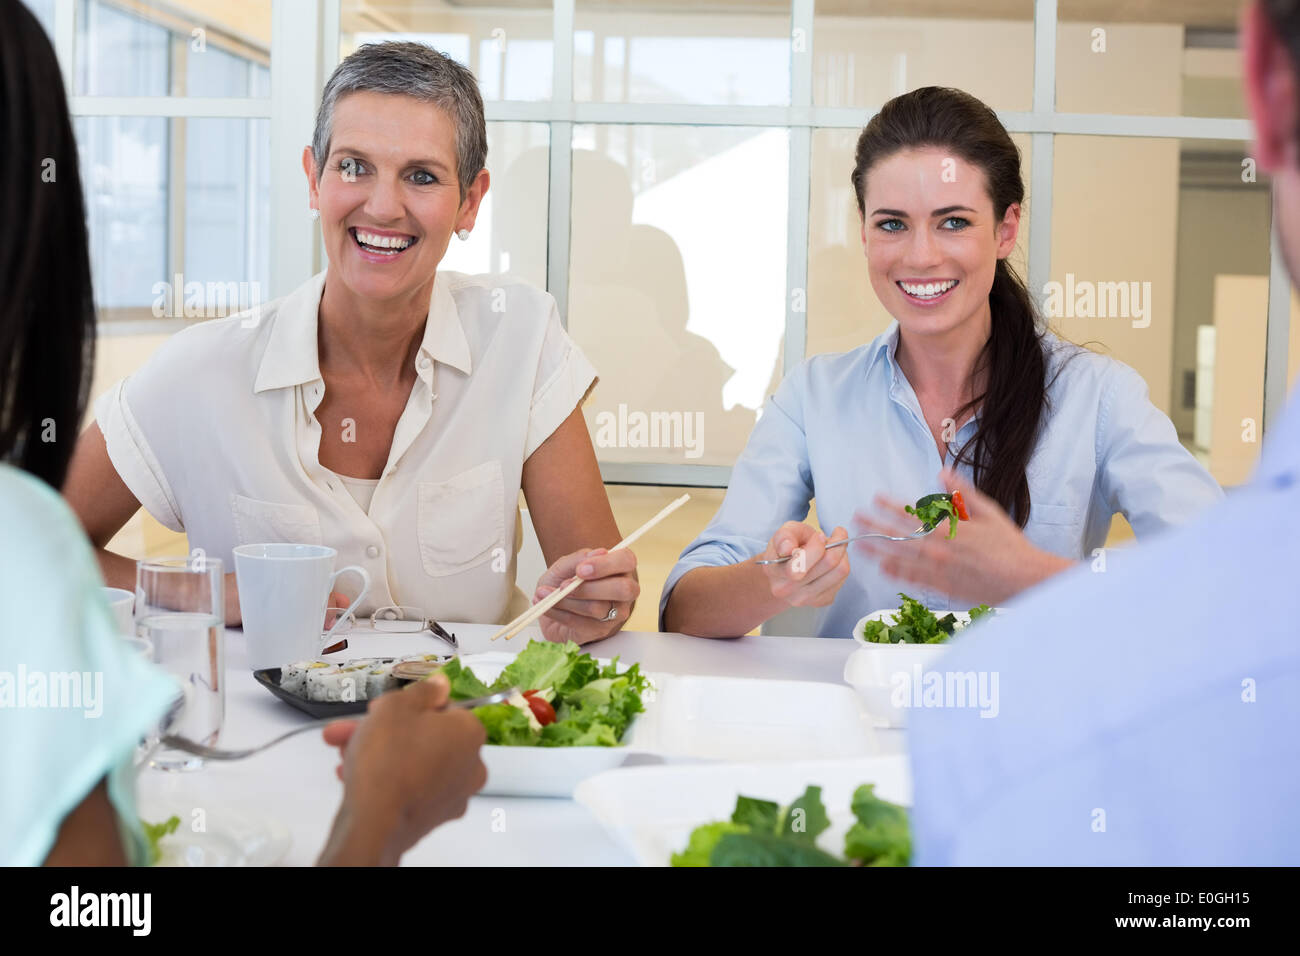 Business people enjoy healthy lunch - Stock Image